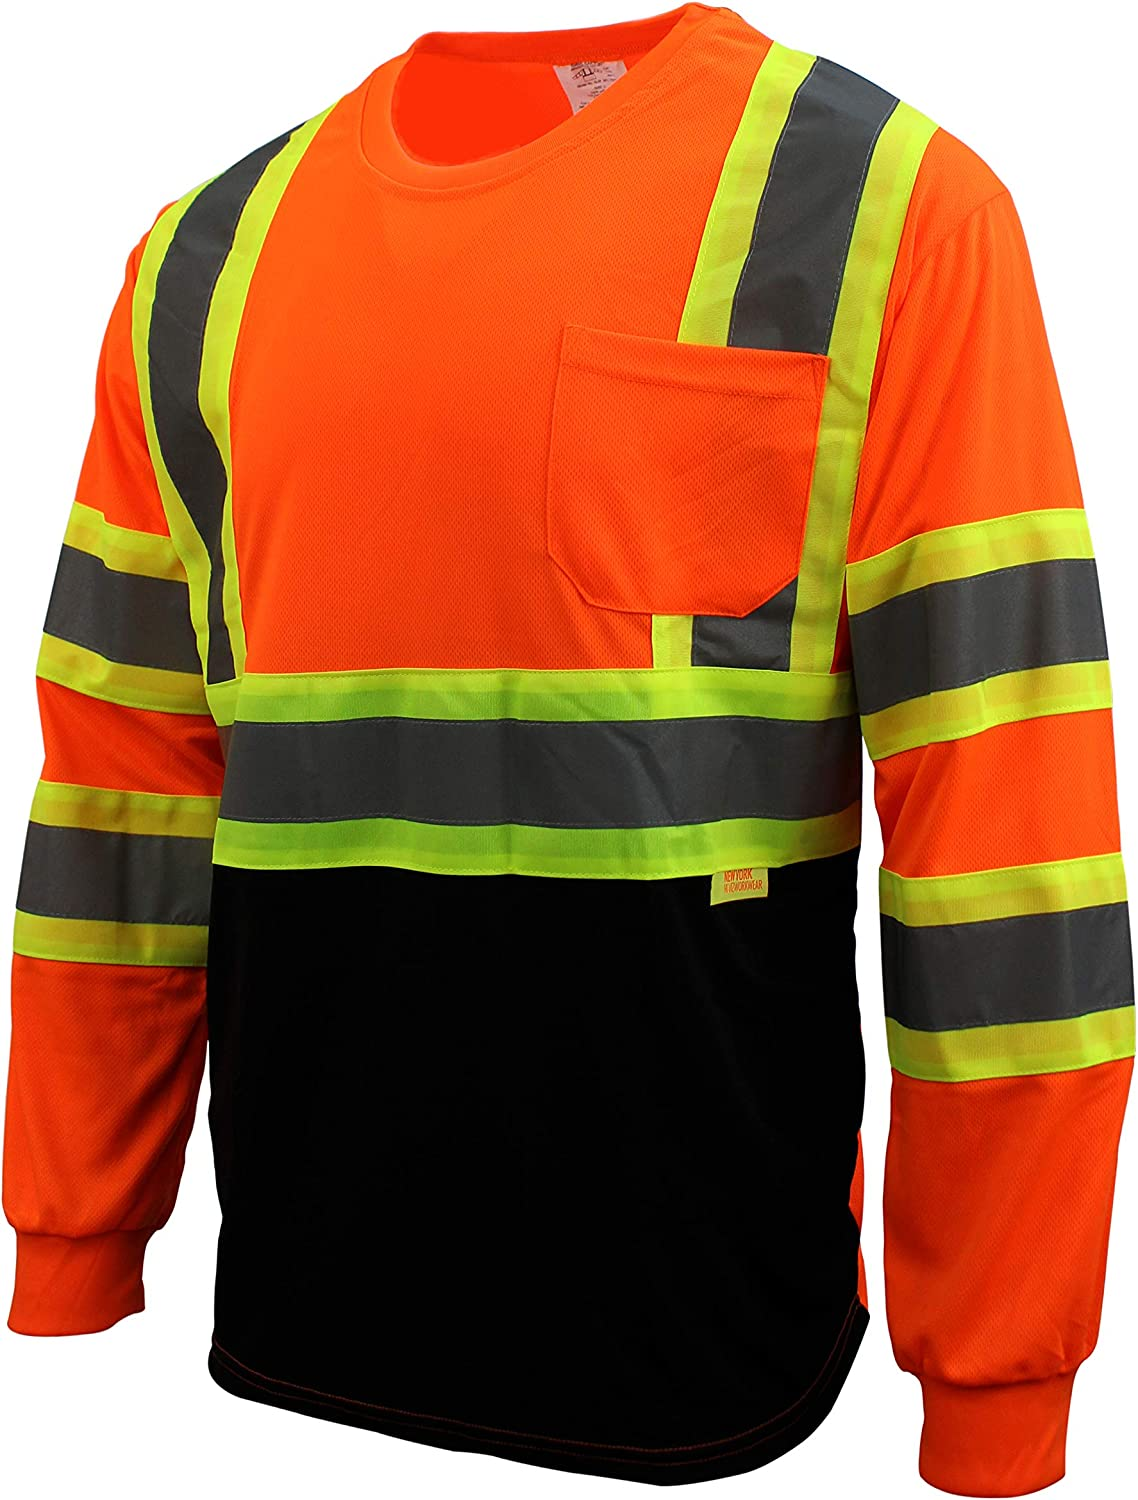 Recommendation Troy Safety TS-BFL-T5711 High-Visibility Class 3 T Shirt Mo with 1 year warranty